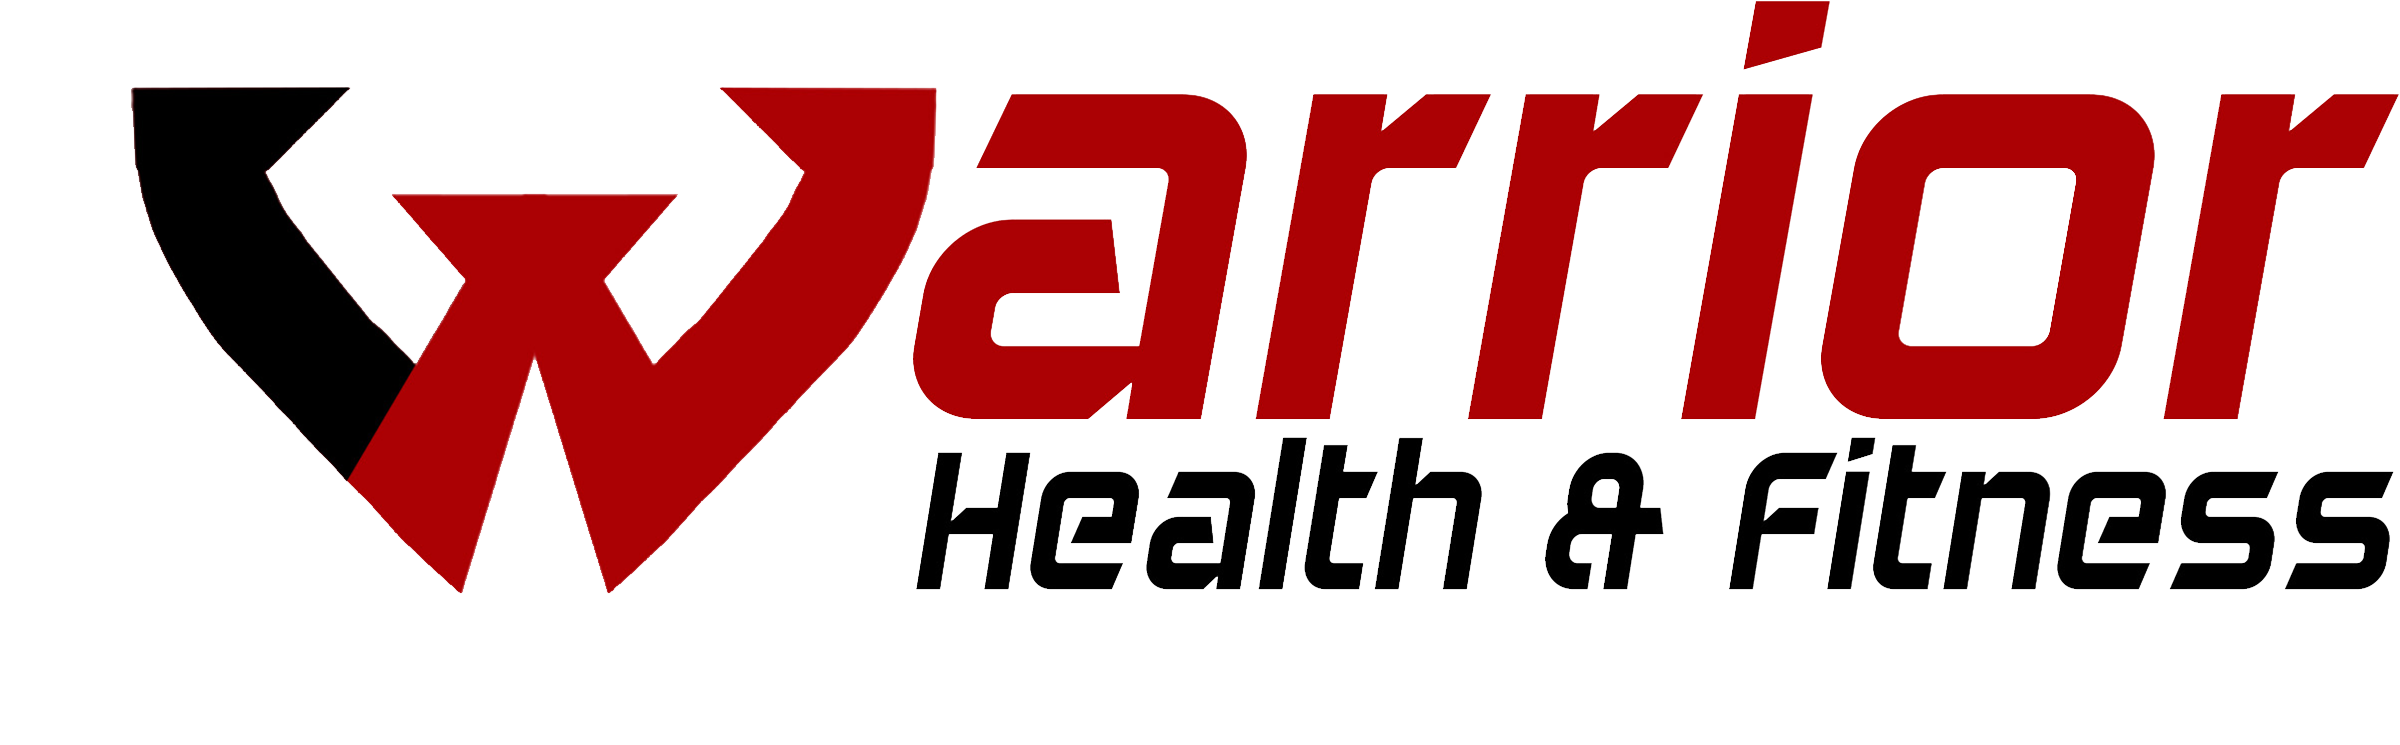 Warrior Health & Fitness